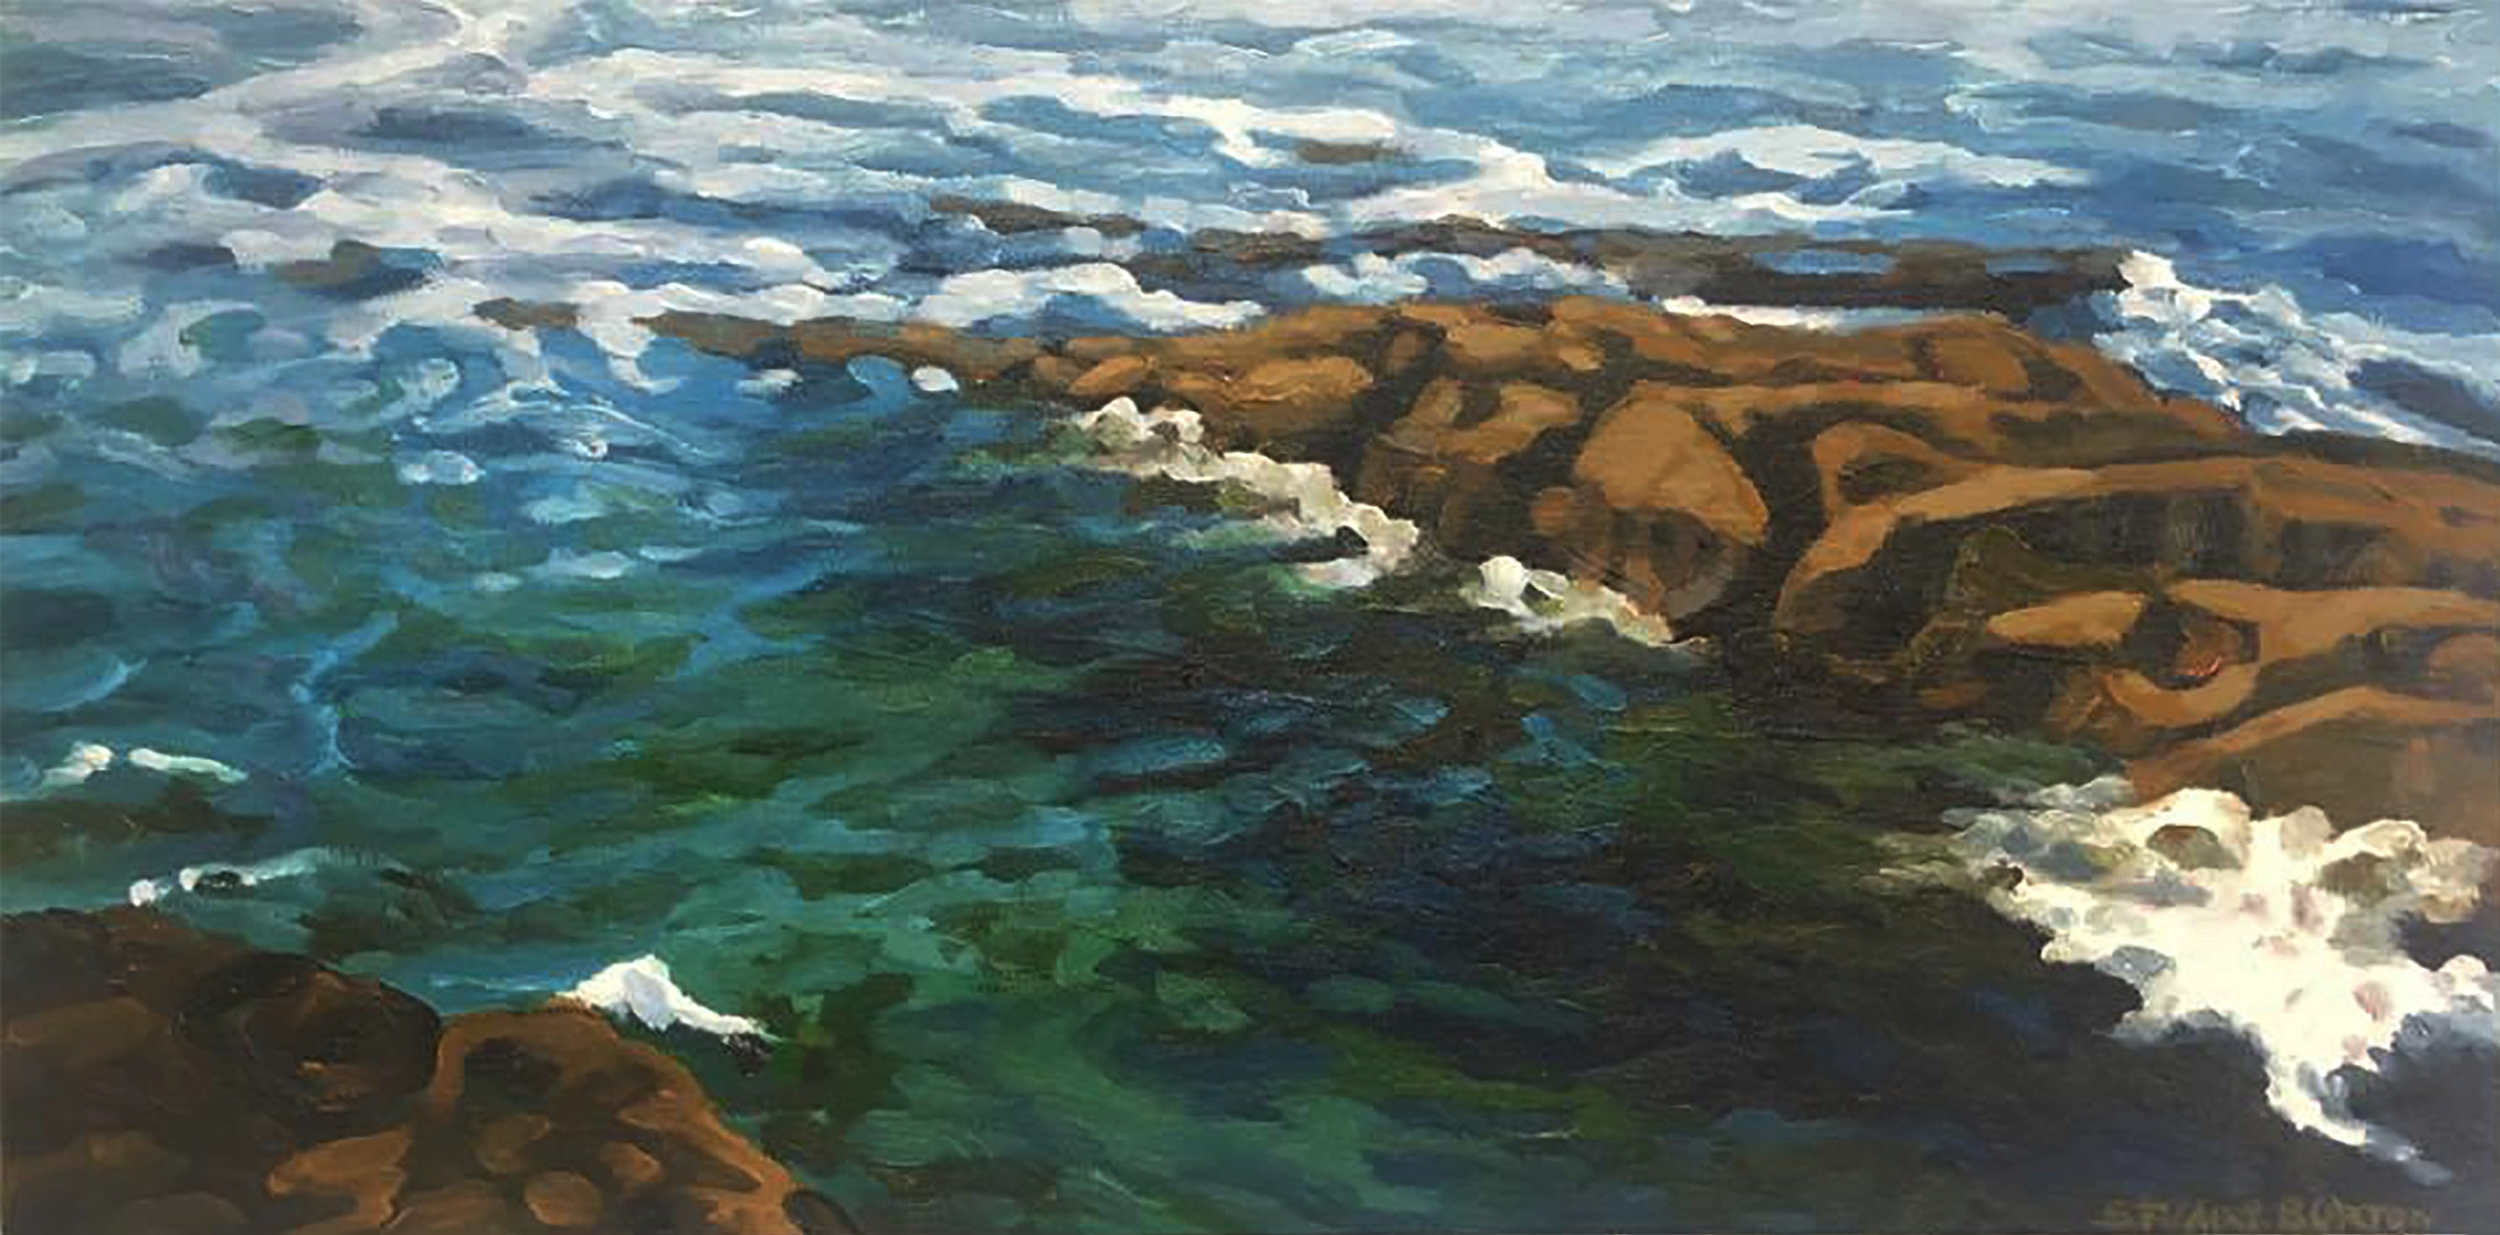 Shallows         12x24          Oil on Canvas           2007